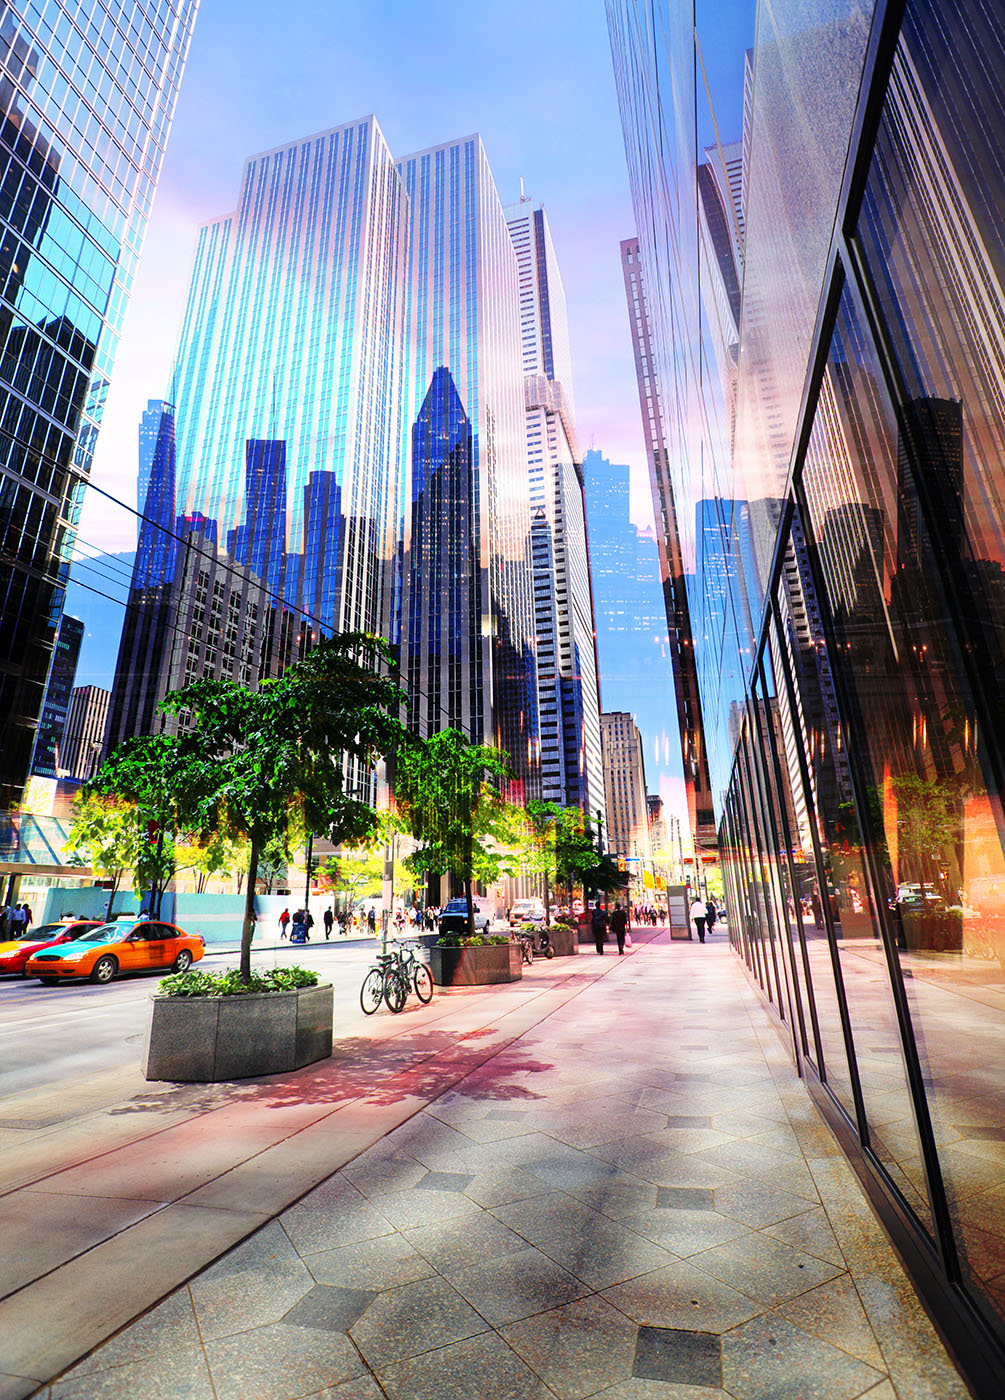 Downtown Office Street 3 - Stock Photo